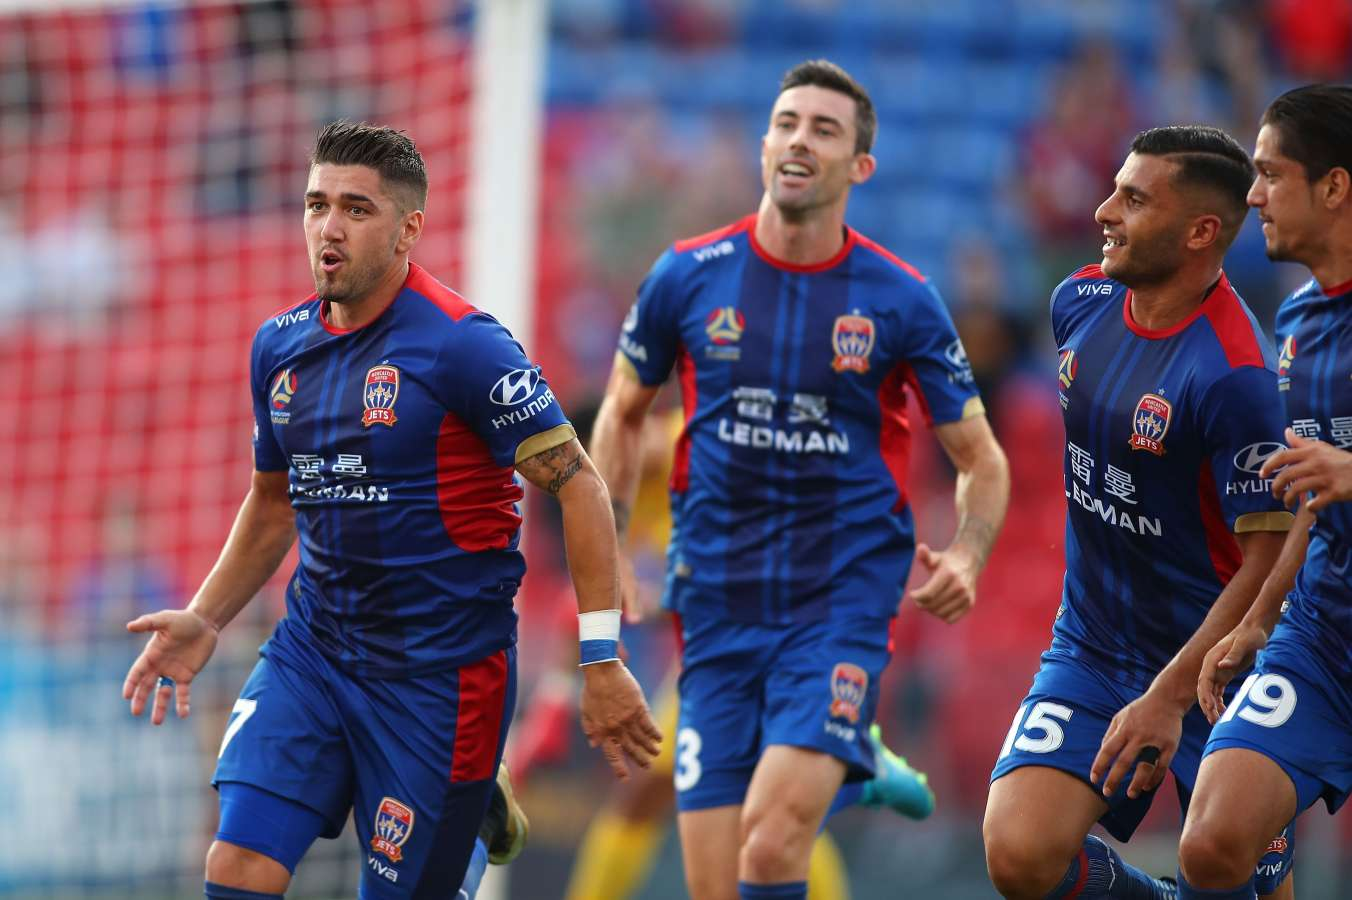 A-League Round 13 - Preview and Best Bets